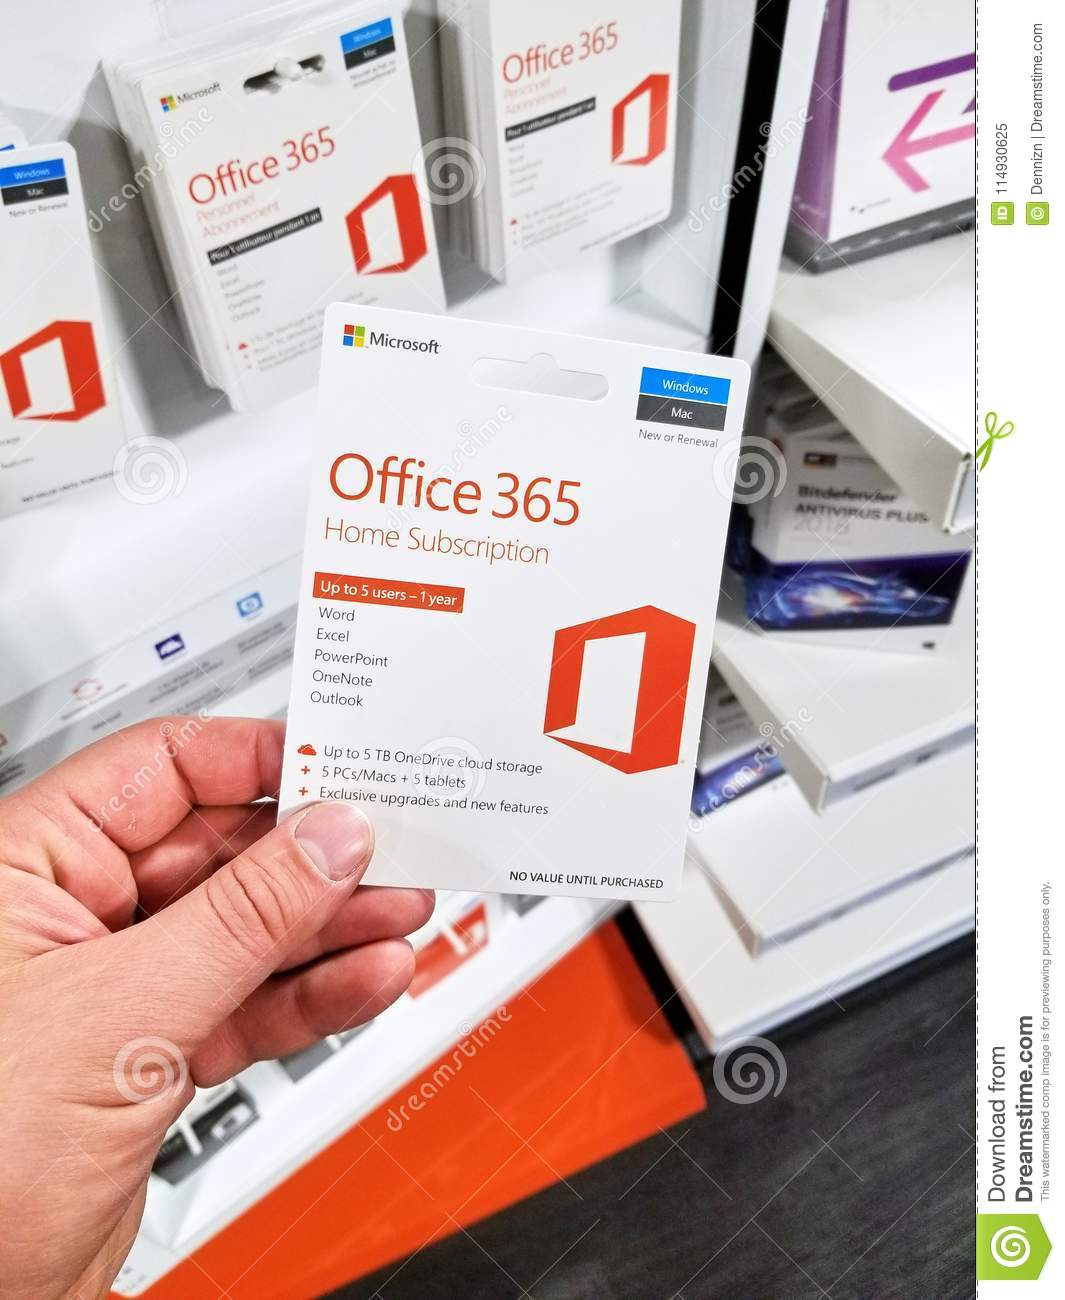 MIcrosoft Office 365 Home Subscribtion Card Editorial Image - Image ...